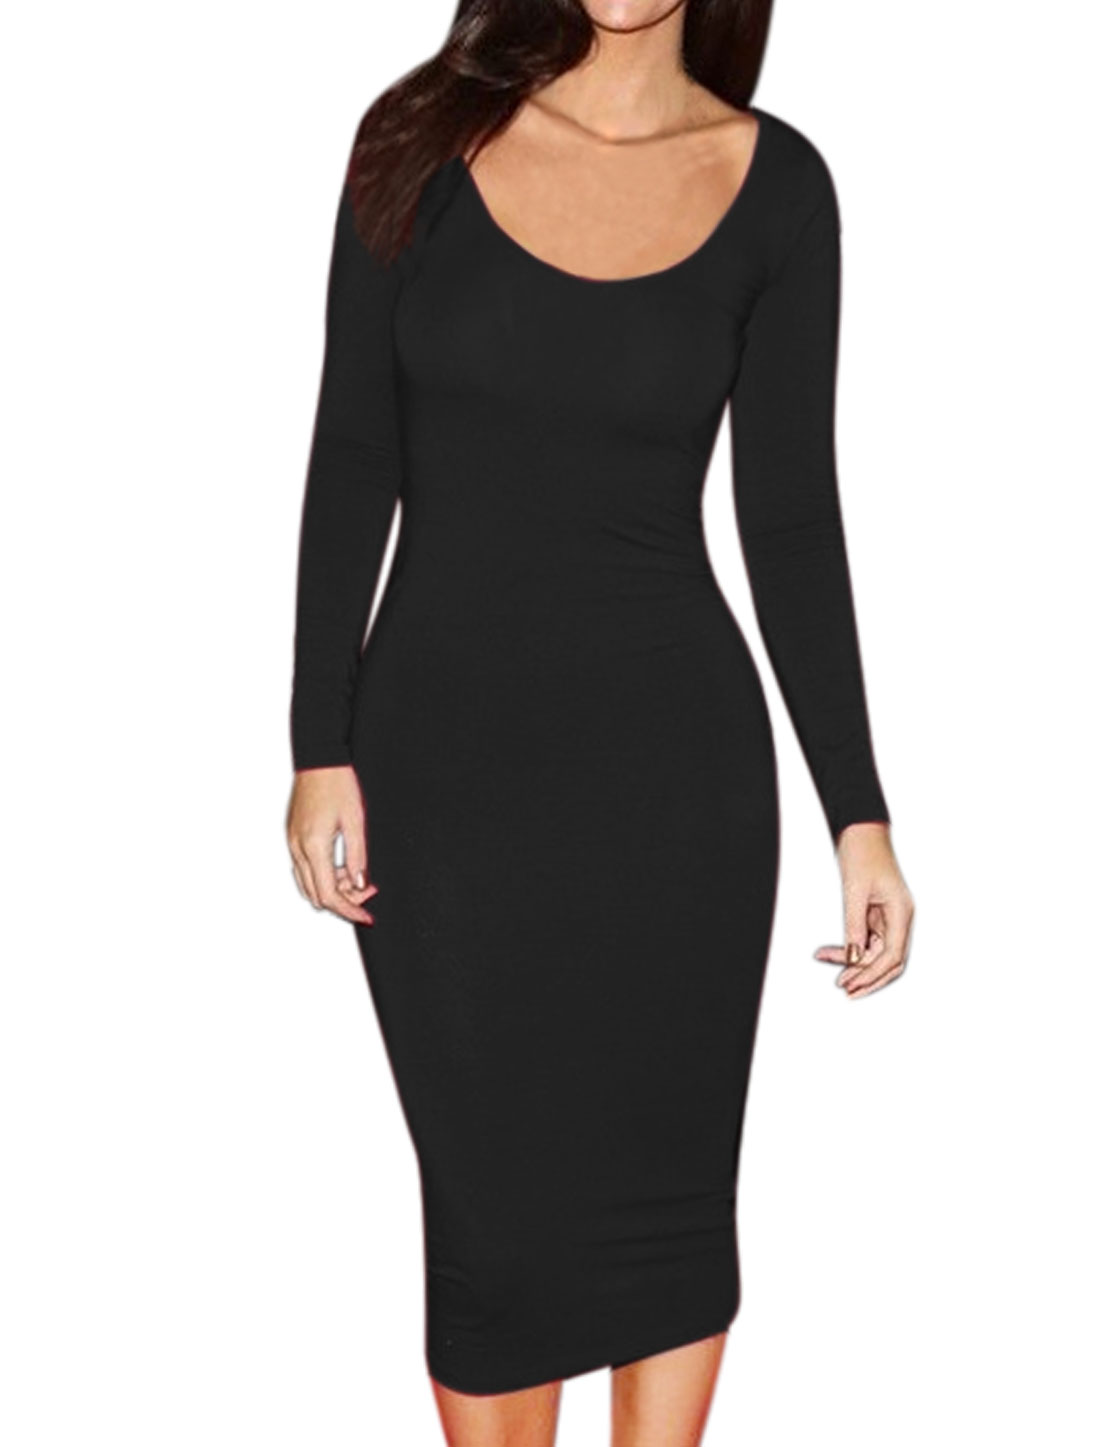 Women Scoop Neck Long Sleeves Stretchy Mid-Calf Bodycon Dress Black L